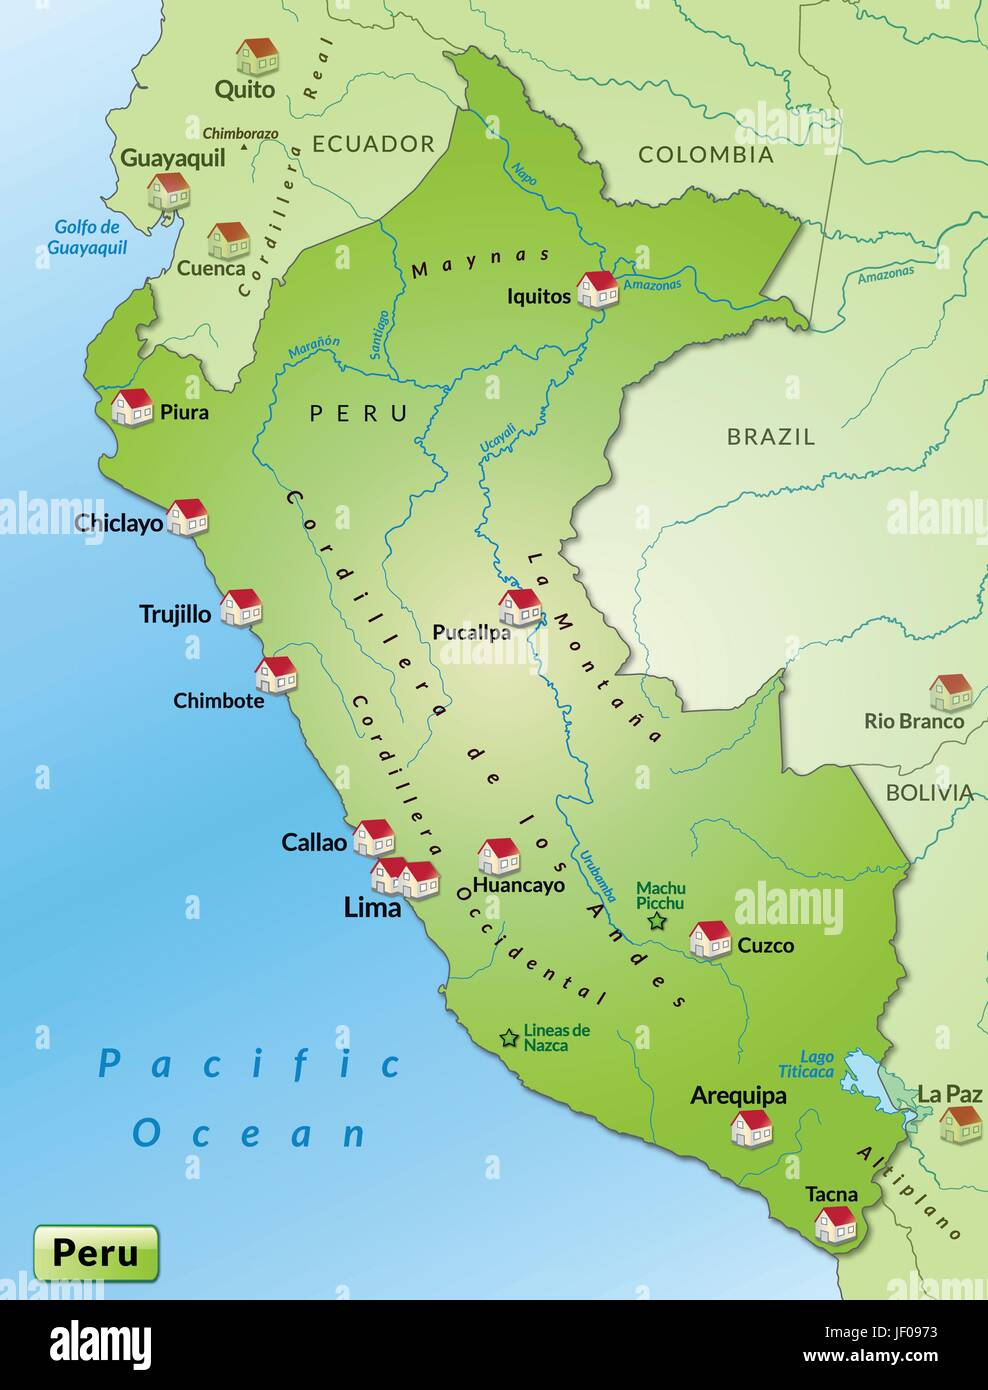 map of peru as infographic in green Stock Vector Art & Illustration ...